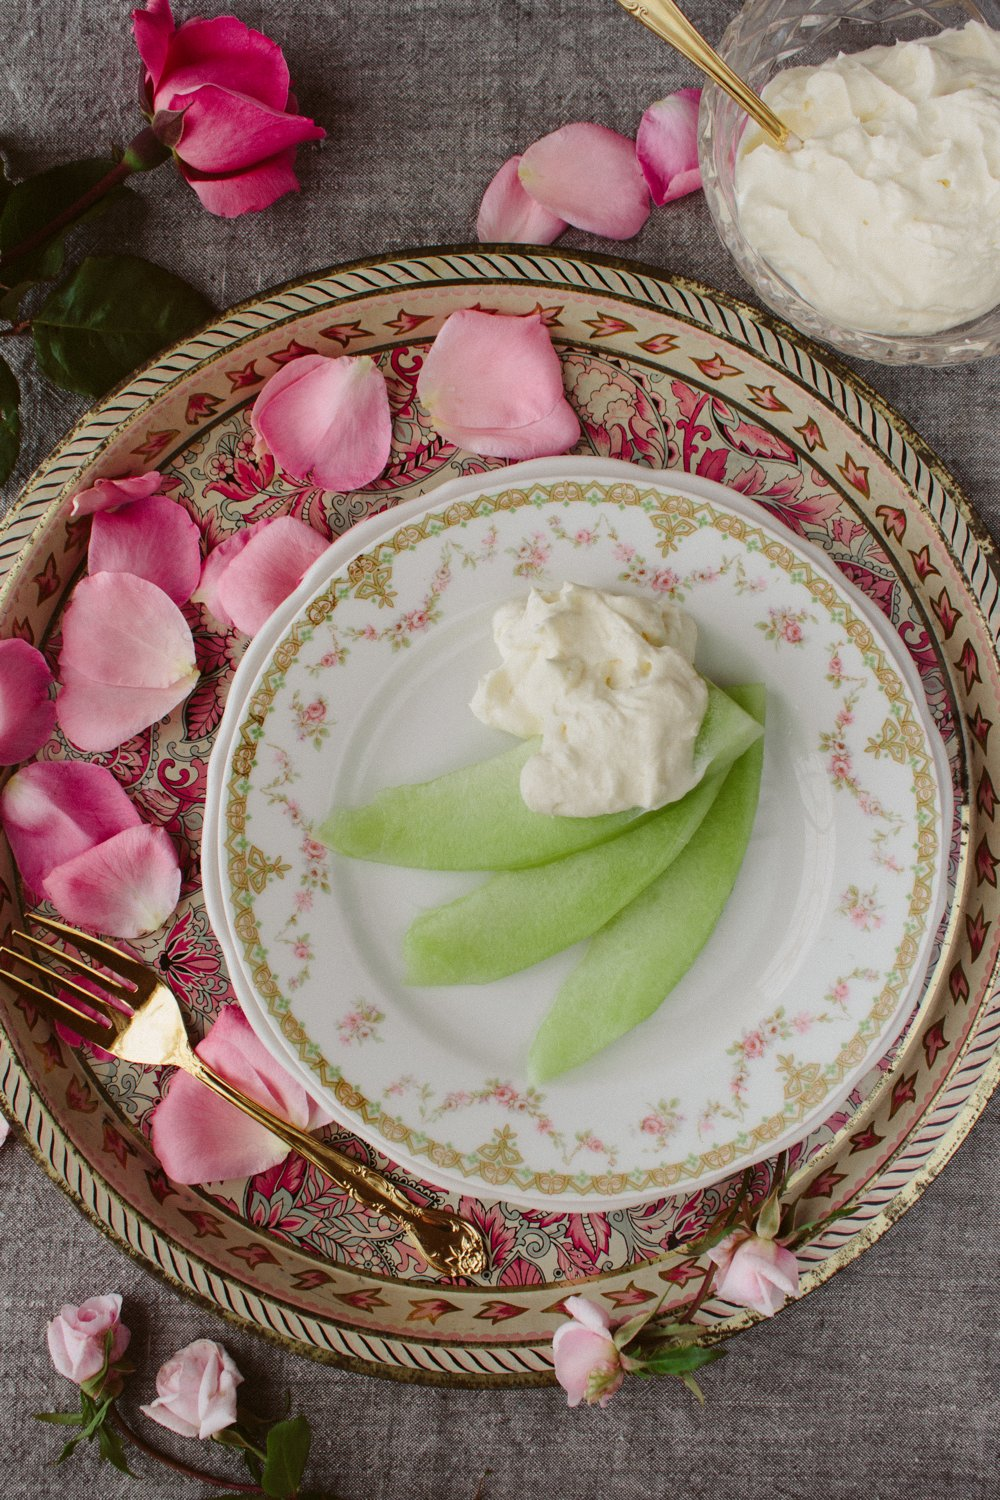 Honeydew with Rosewater and Honey Cream